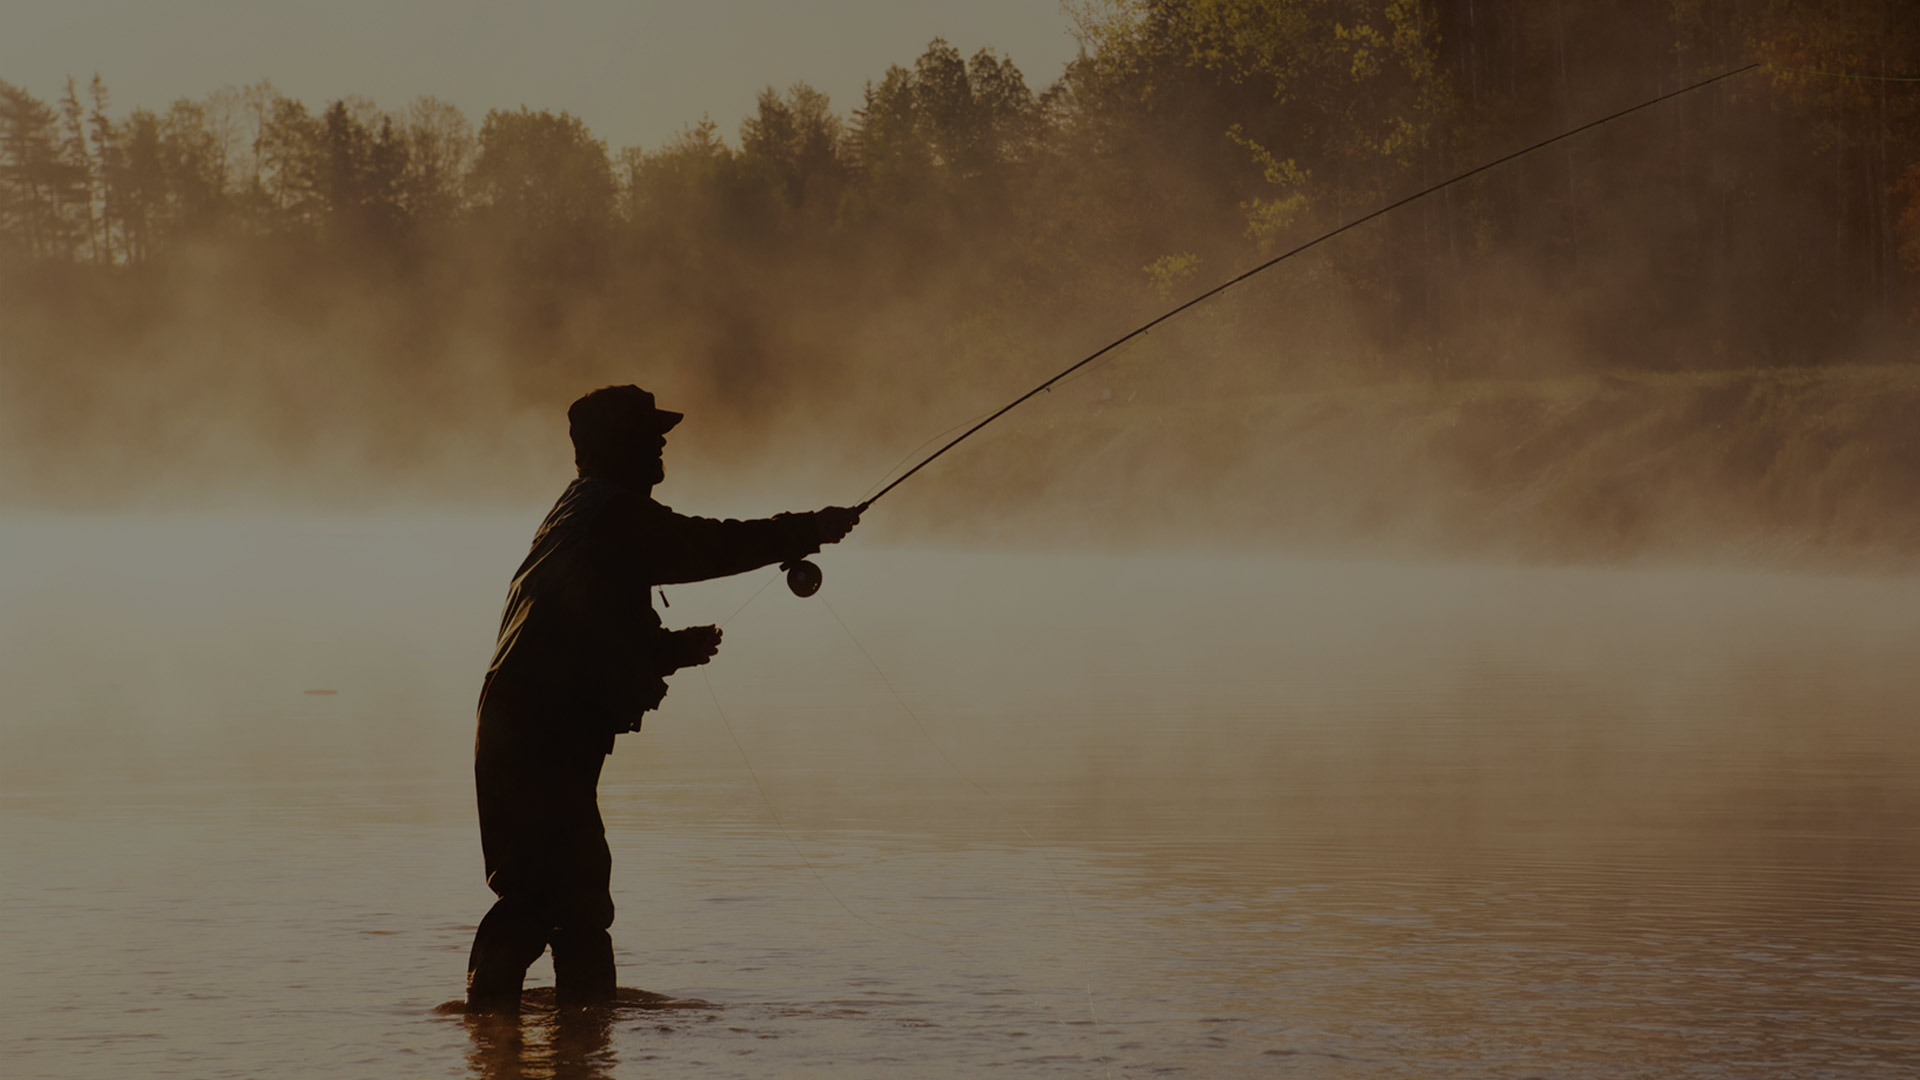 Dieppe fly fishing forum 2019 moncton new brunswick for Fly fishing forum